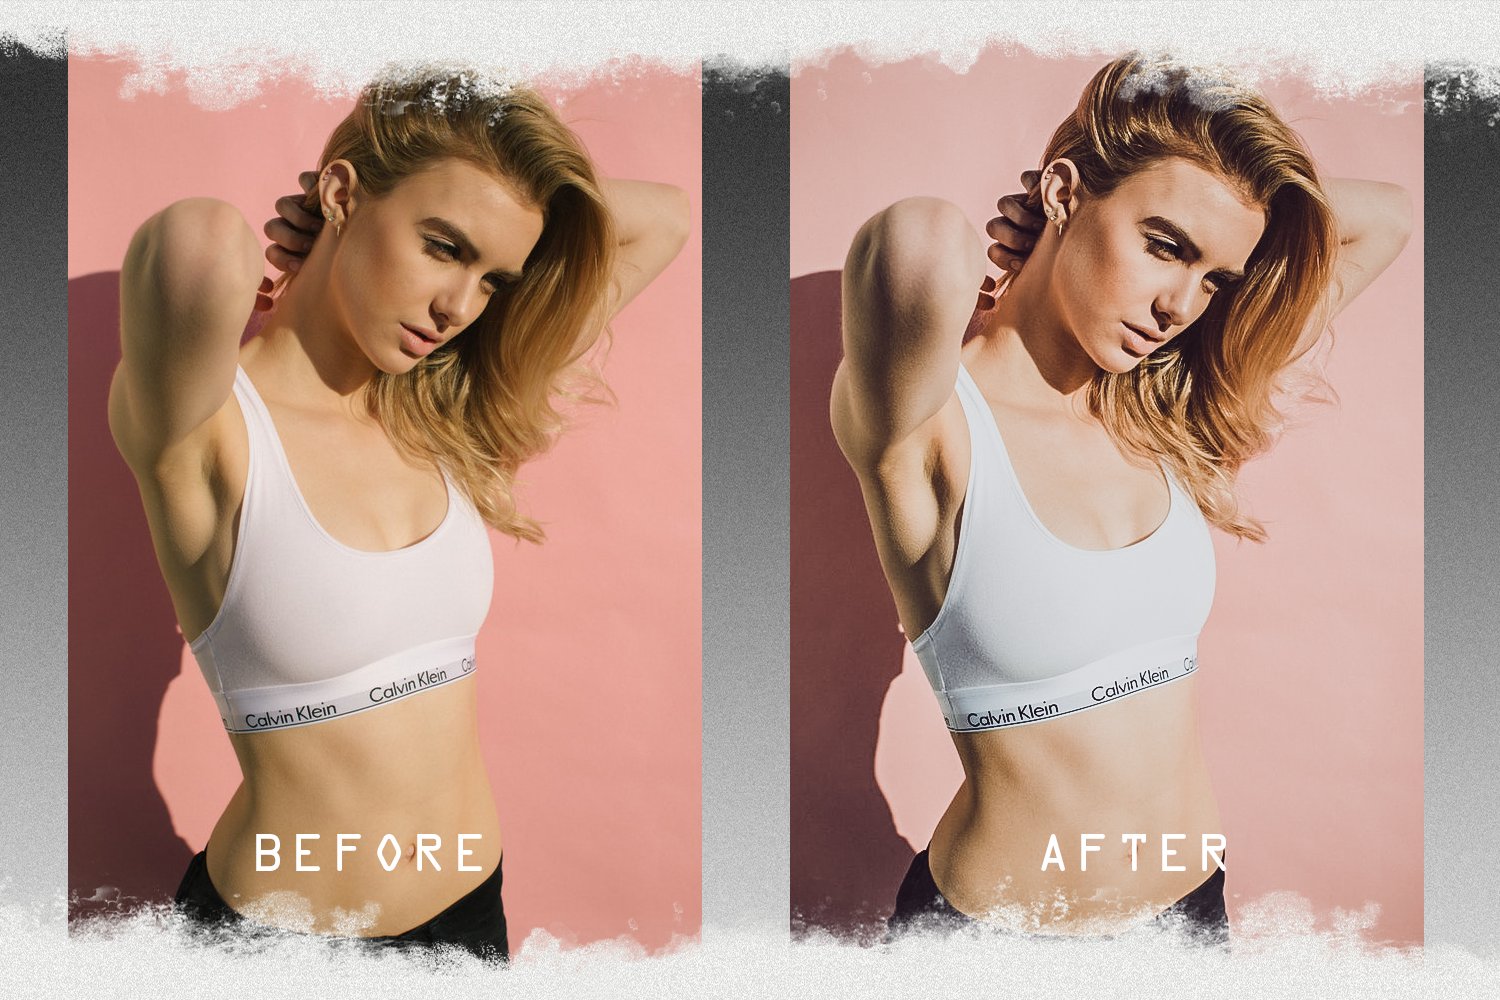 Nude presets for mobile and PC photo filter, photo effect example image 7